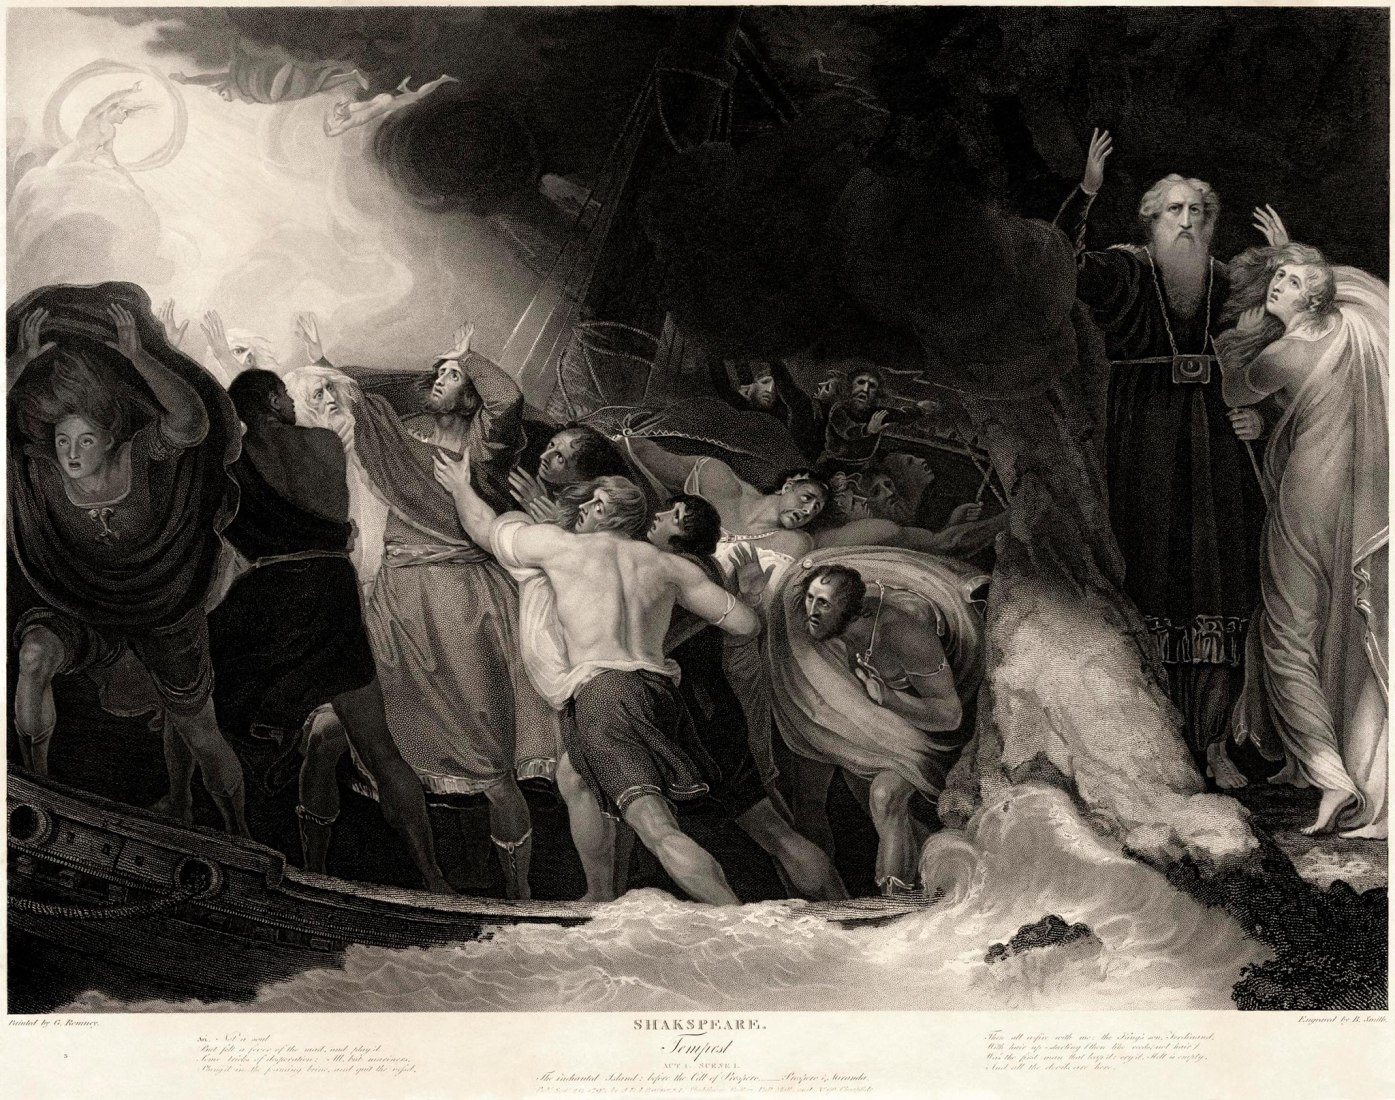 Act I, Scene 1 of The Tempest by William Shakespeare, in an engraving based off of a painting by George Romney.  Published by J. & J. Boydell at the Shakespeare Gallery, Pall Mall & at No. 90 Cheapside. Via Wikimedia Commons licensed under CC0 1.0 (Public Domain). Image © Benjamin Smith